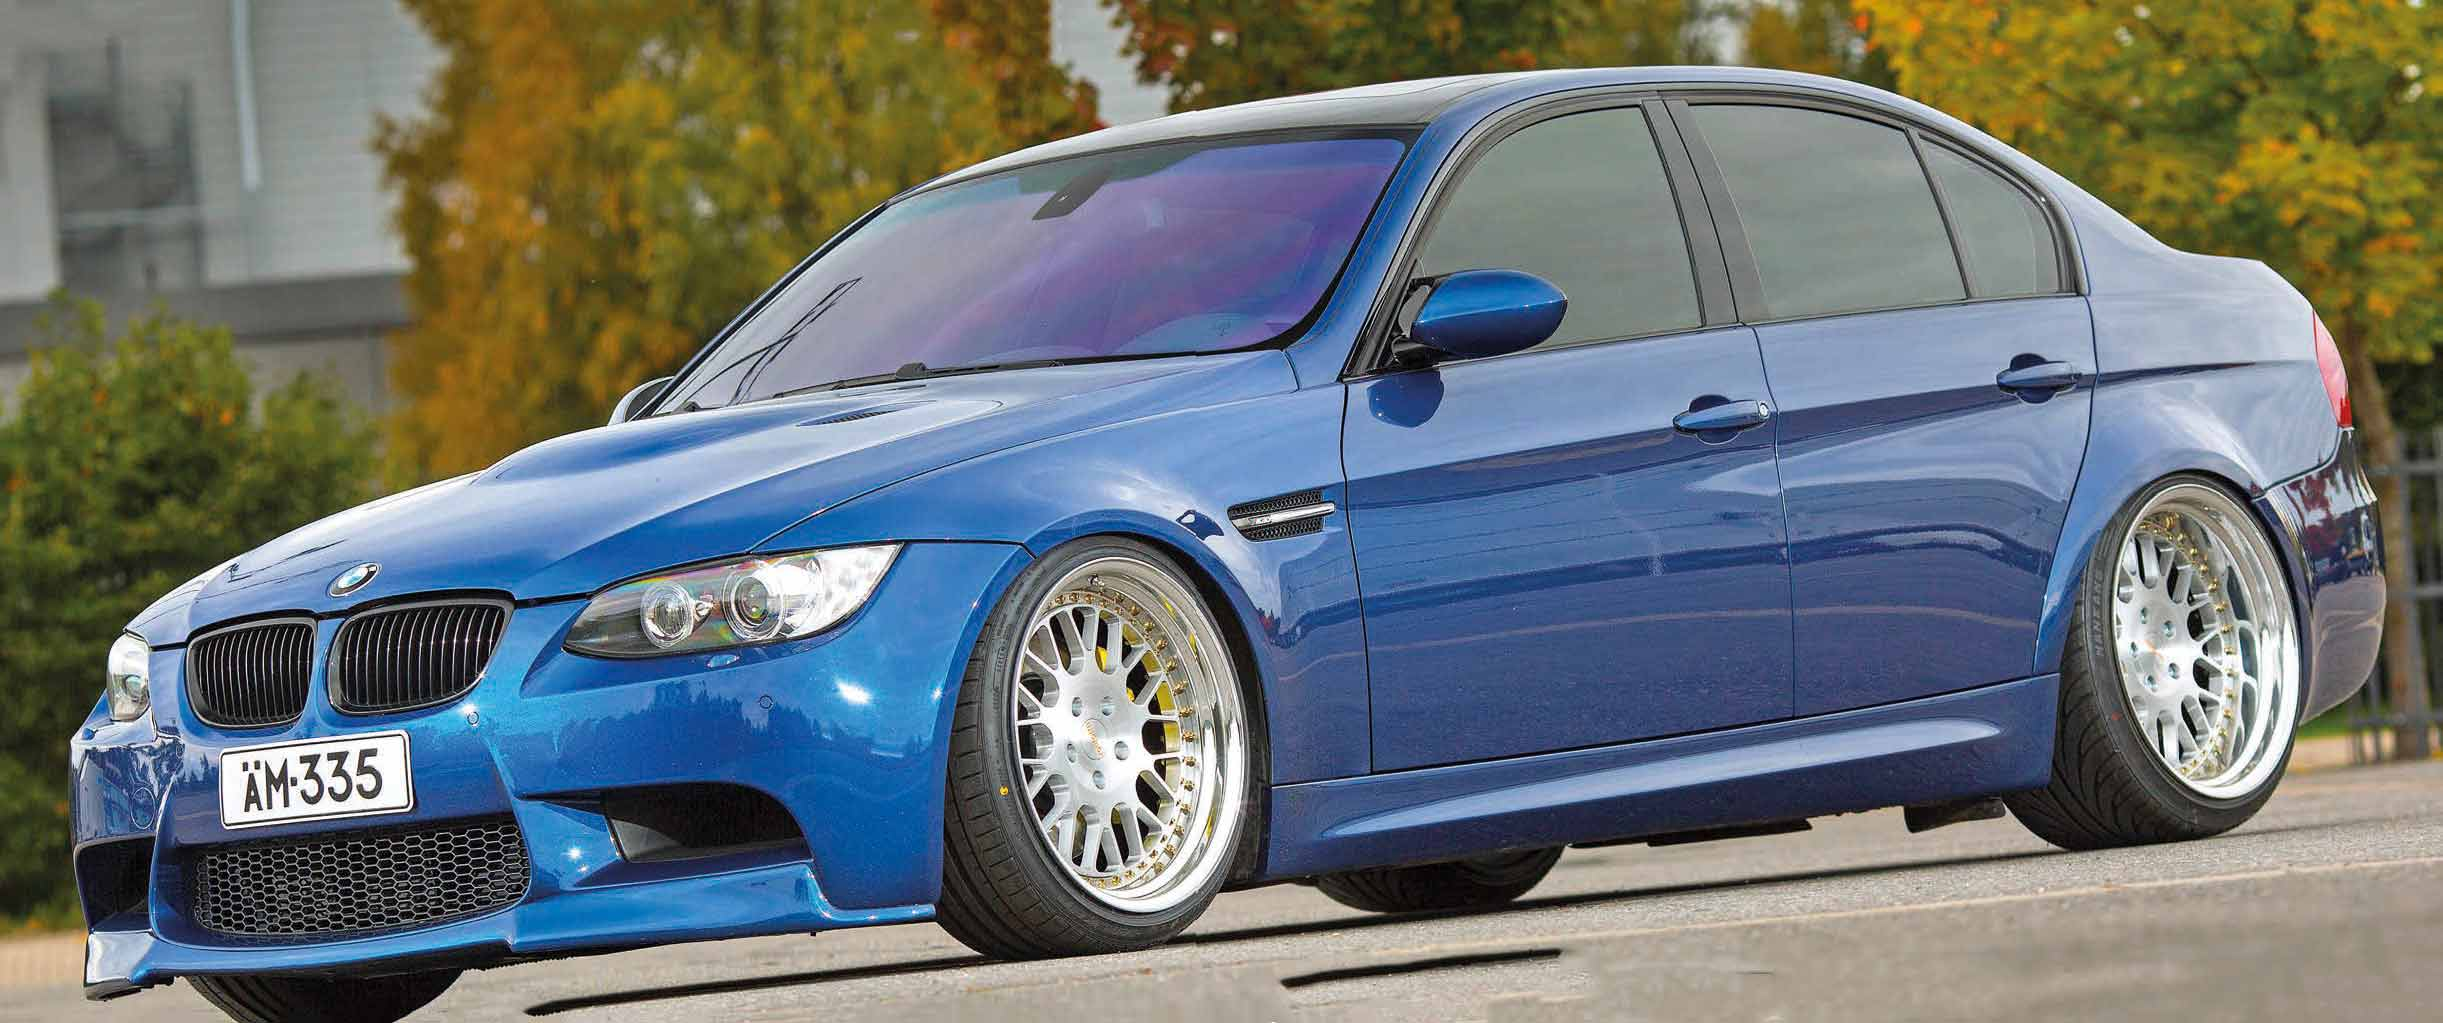 410hp tuned m3 look bmw 335d e90 drive my blogs drive. Black Bedroom Furniture Sets. Home Design Ideas